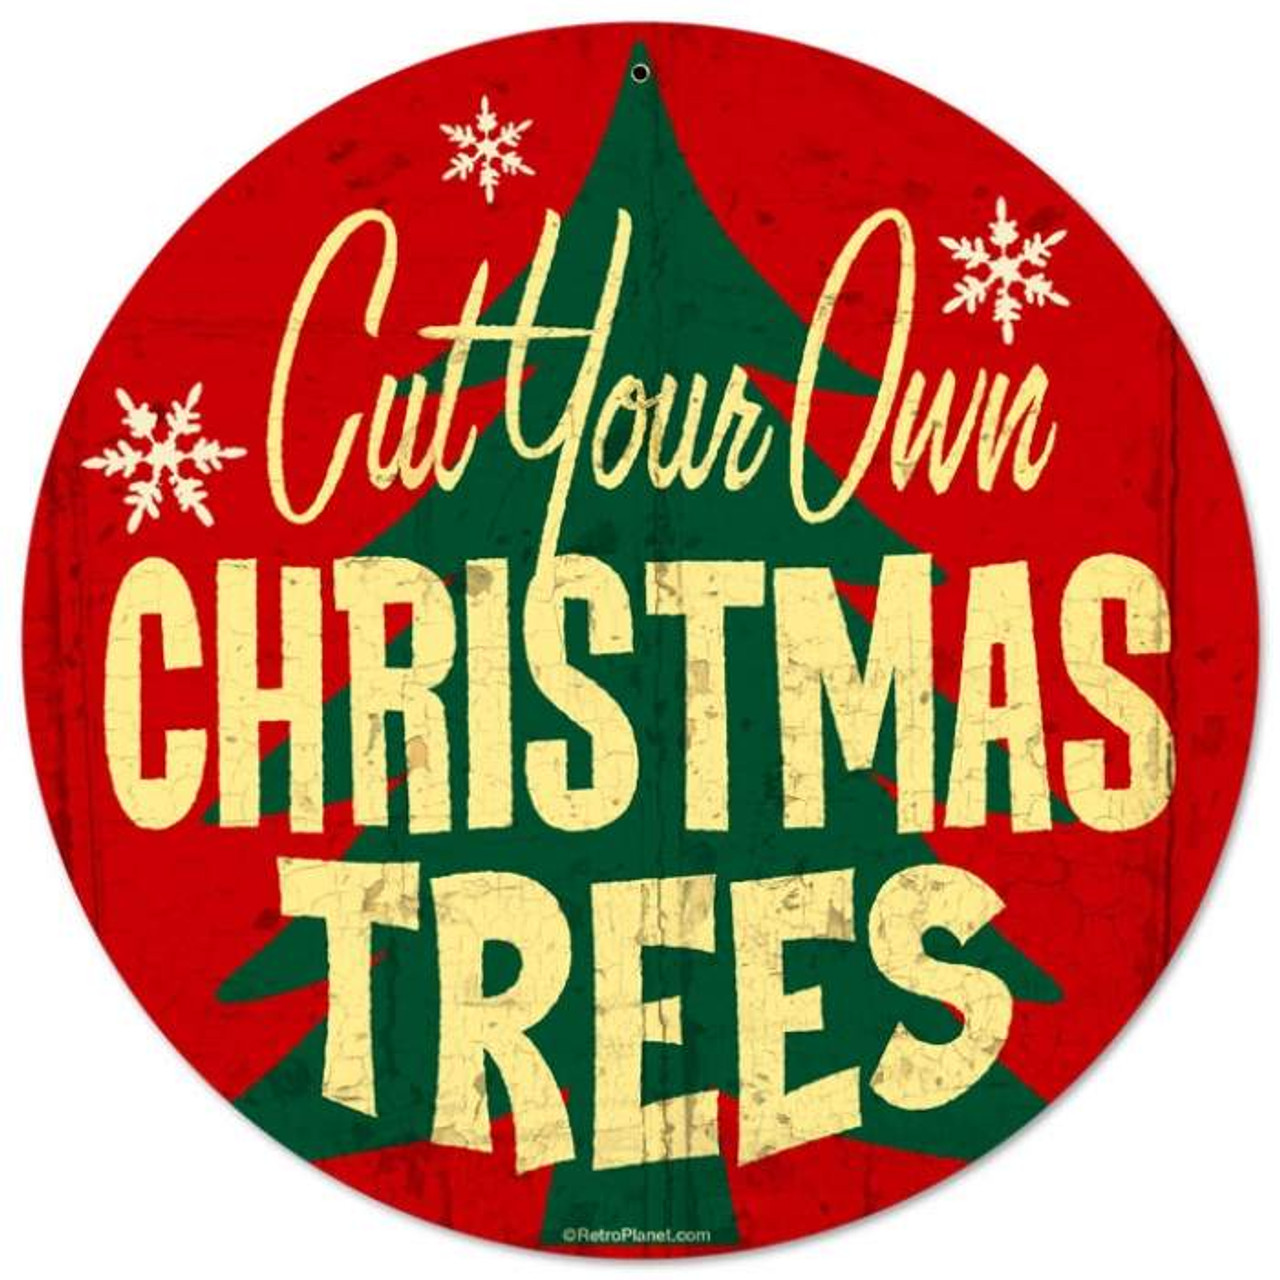 Retro Christmas Trees Metal Sign  14 x 14 Inches